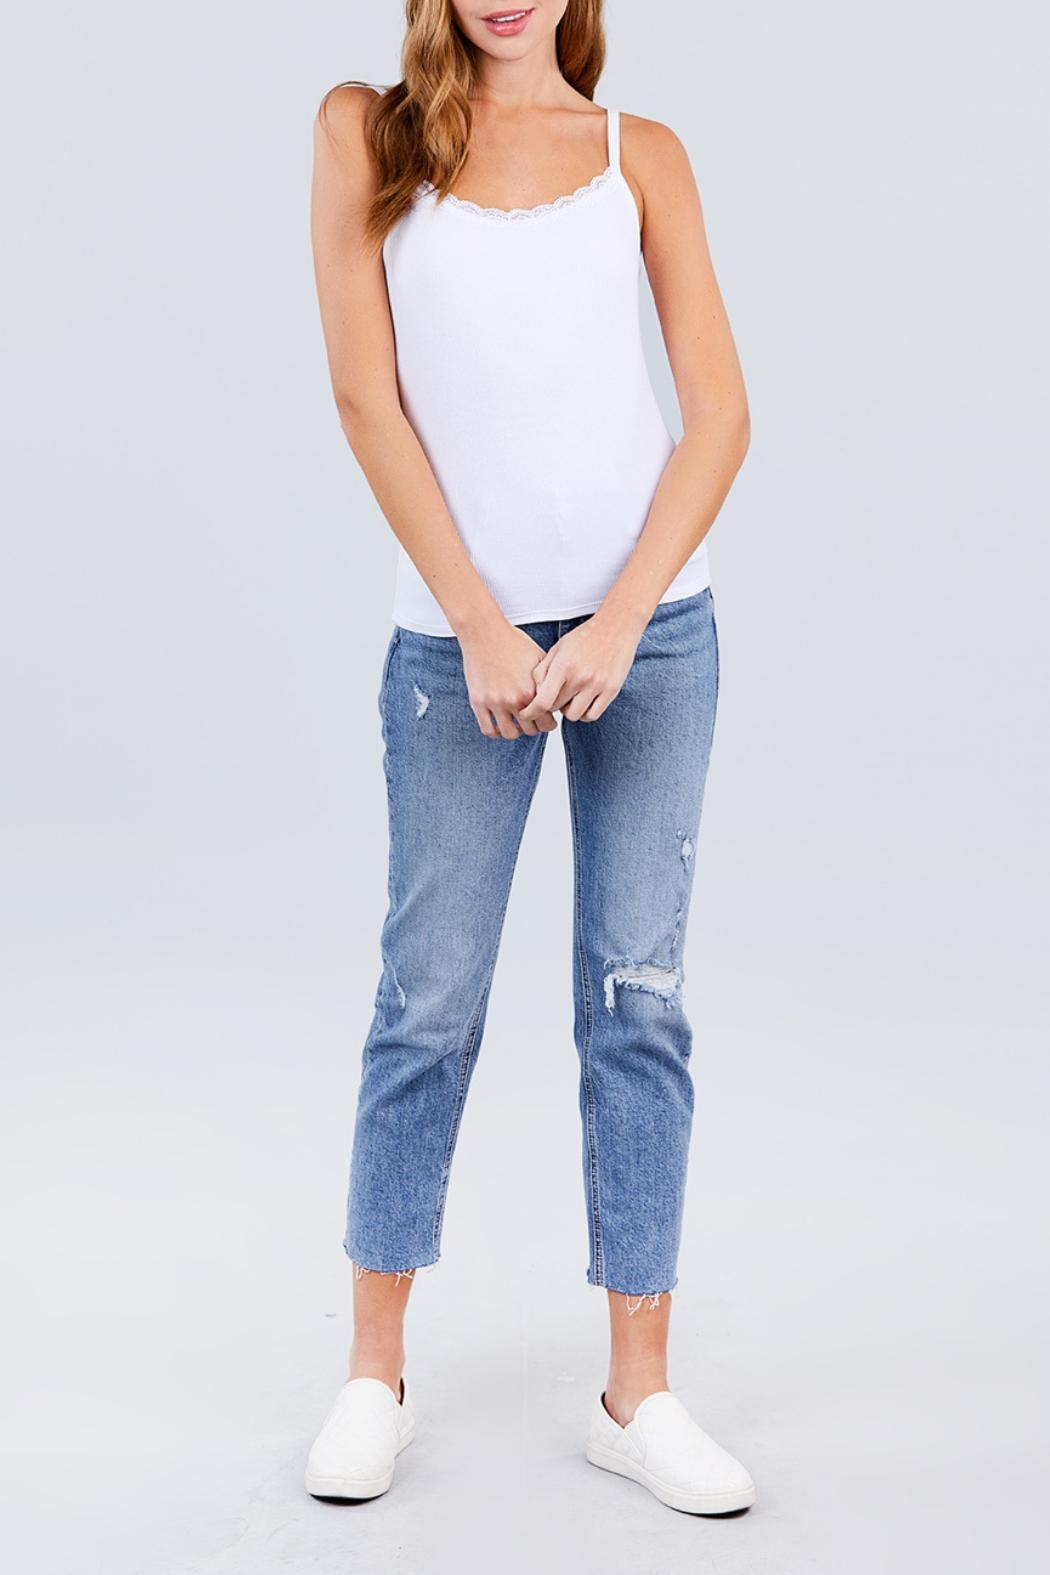 Active USA Off-White Rib Cami - Front Full Image